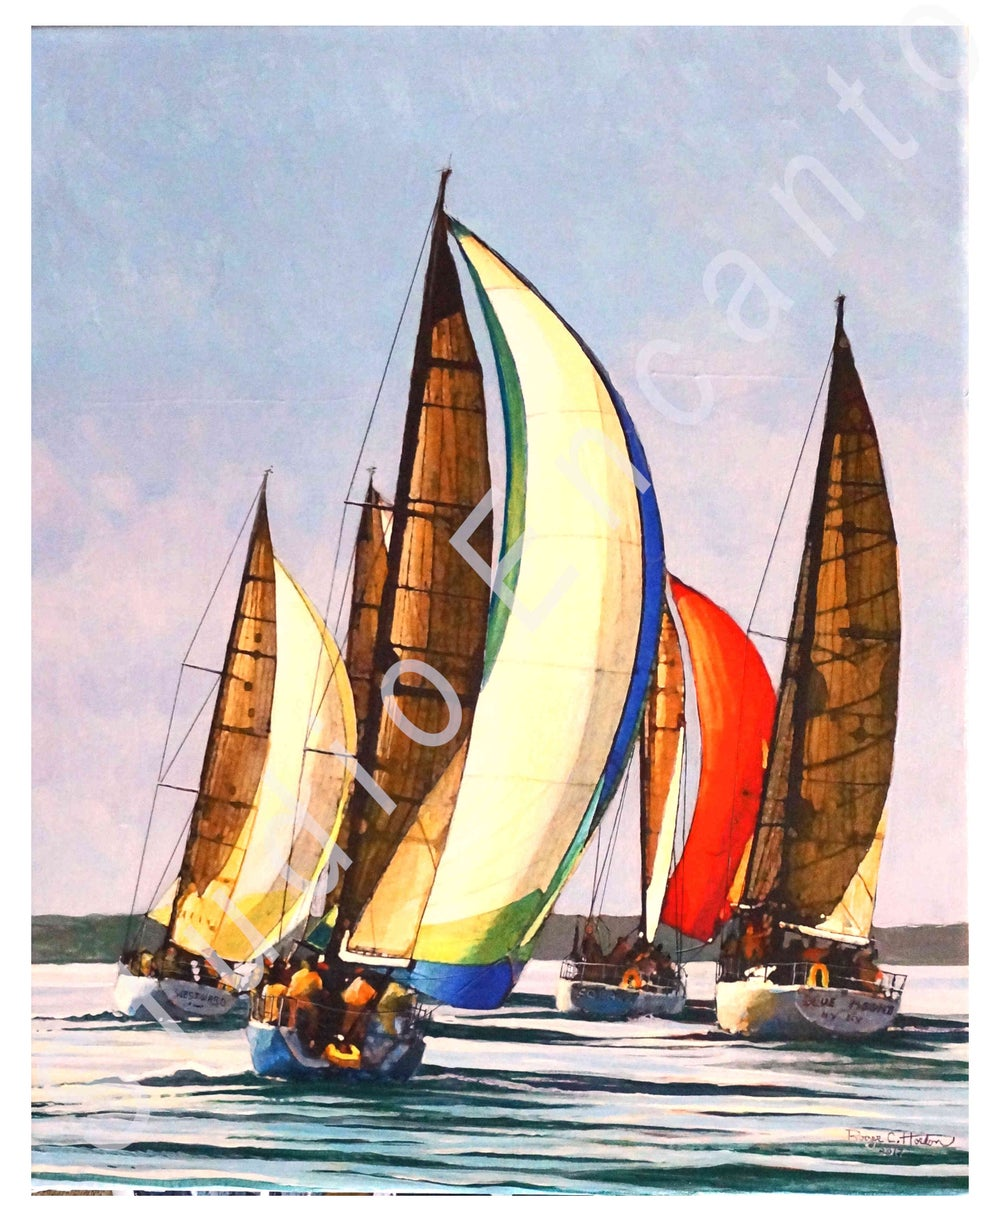 Image of Bunched up at the Mark by Captain Roger C. Horton